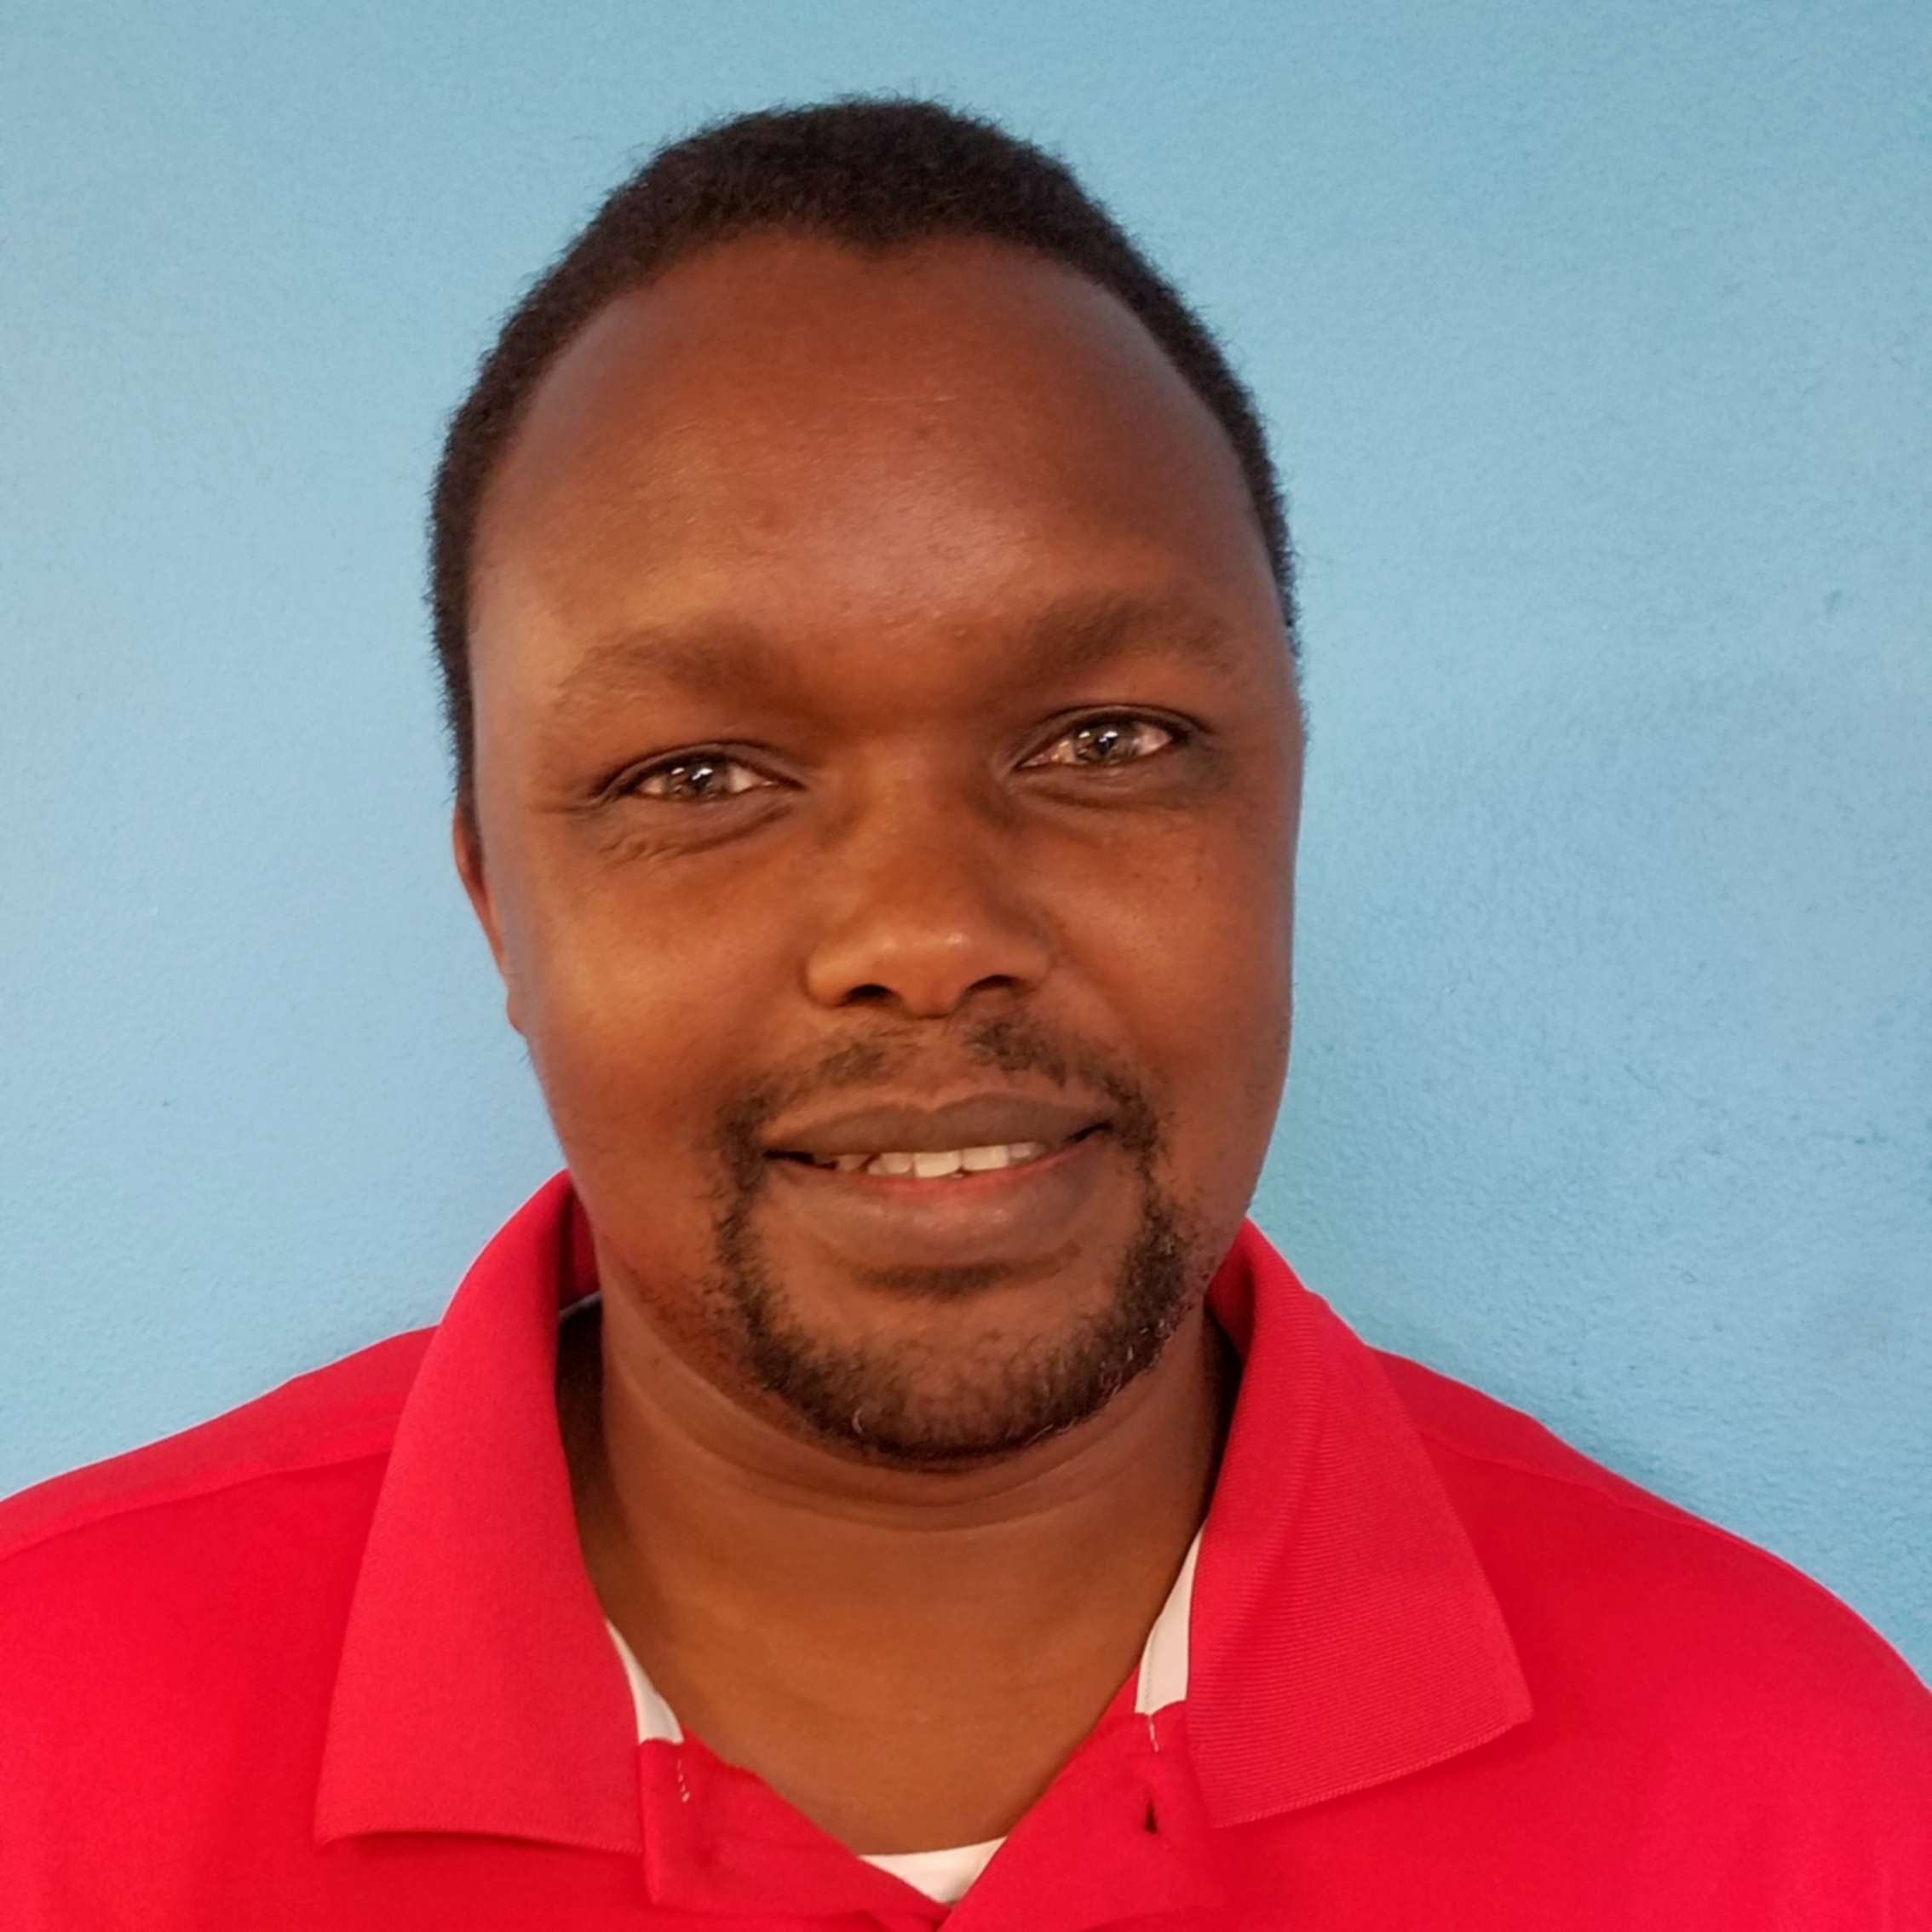 Gabriel Rop -- Director of Programs and Operations